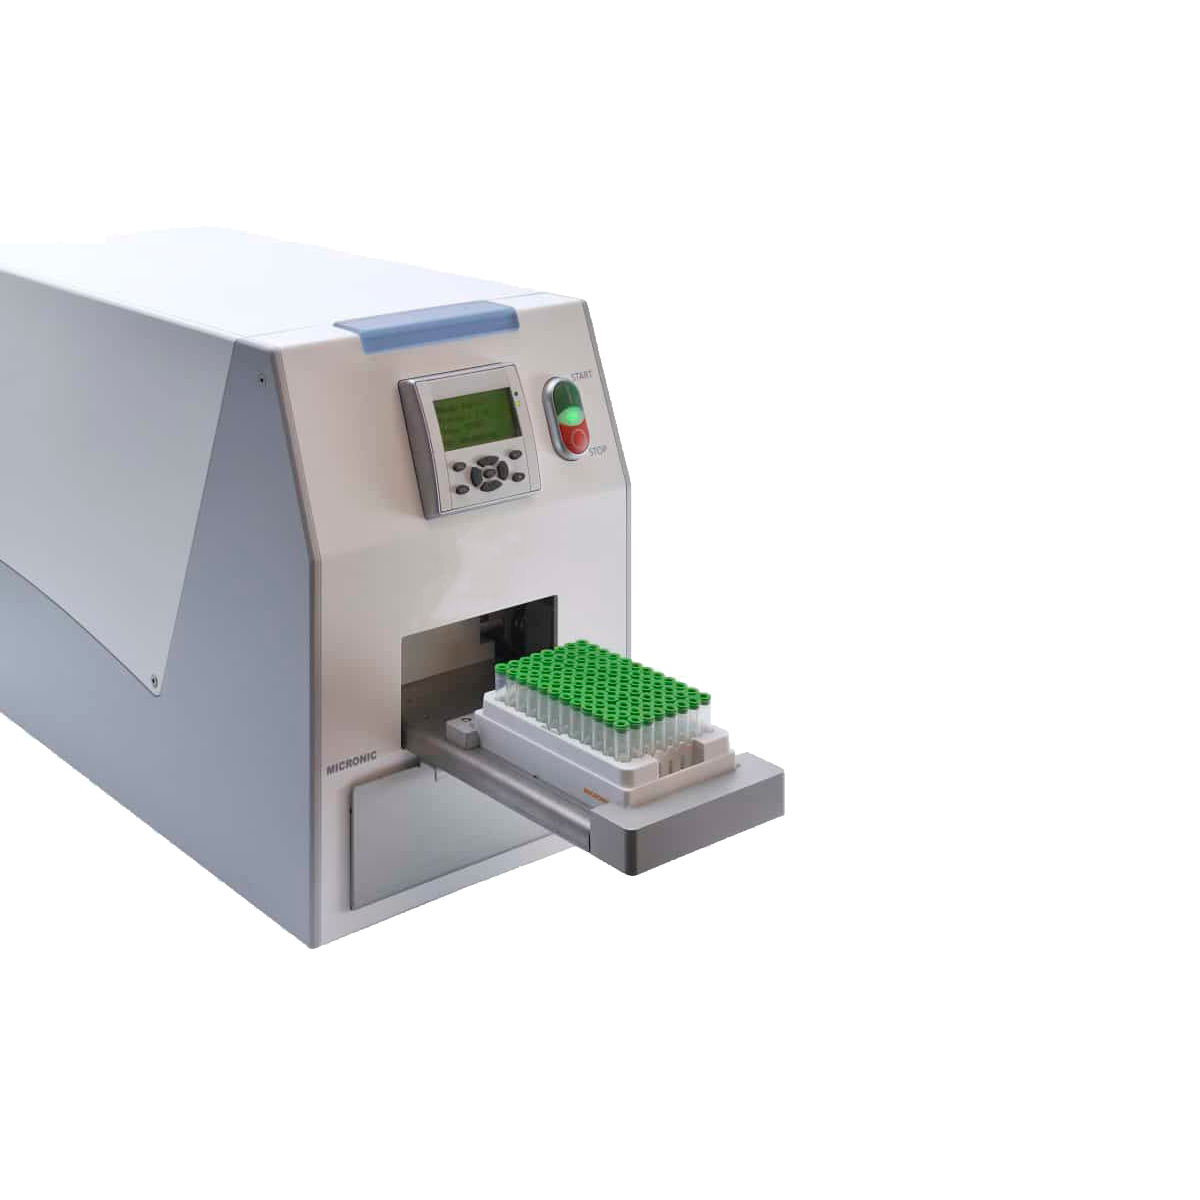 Decapping systems